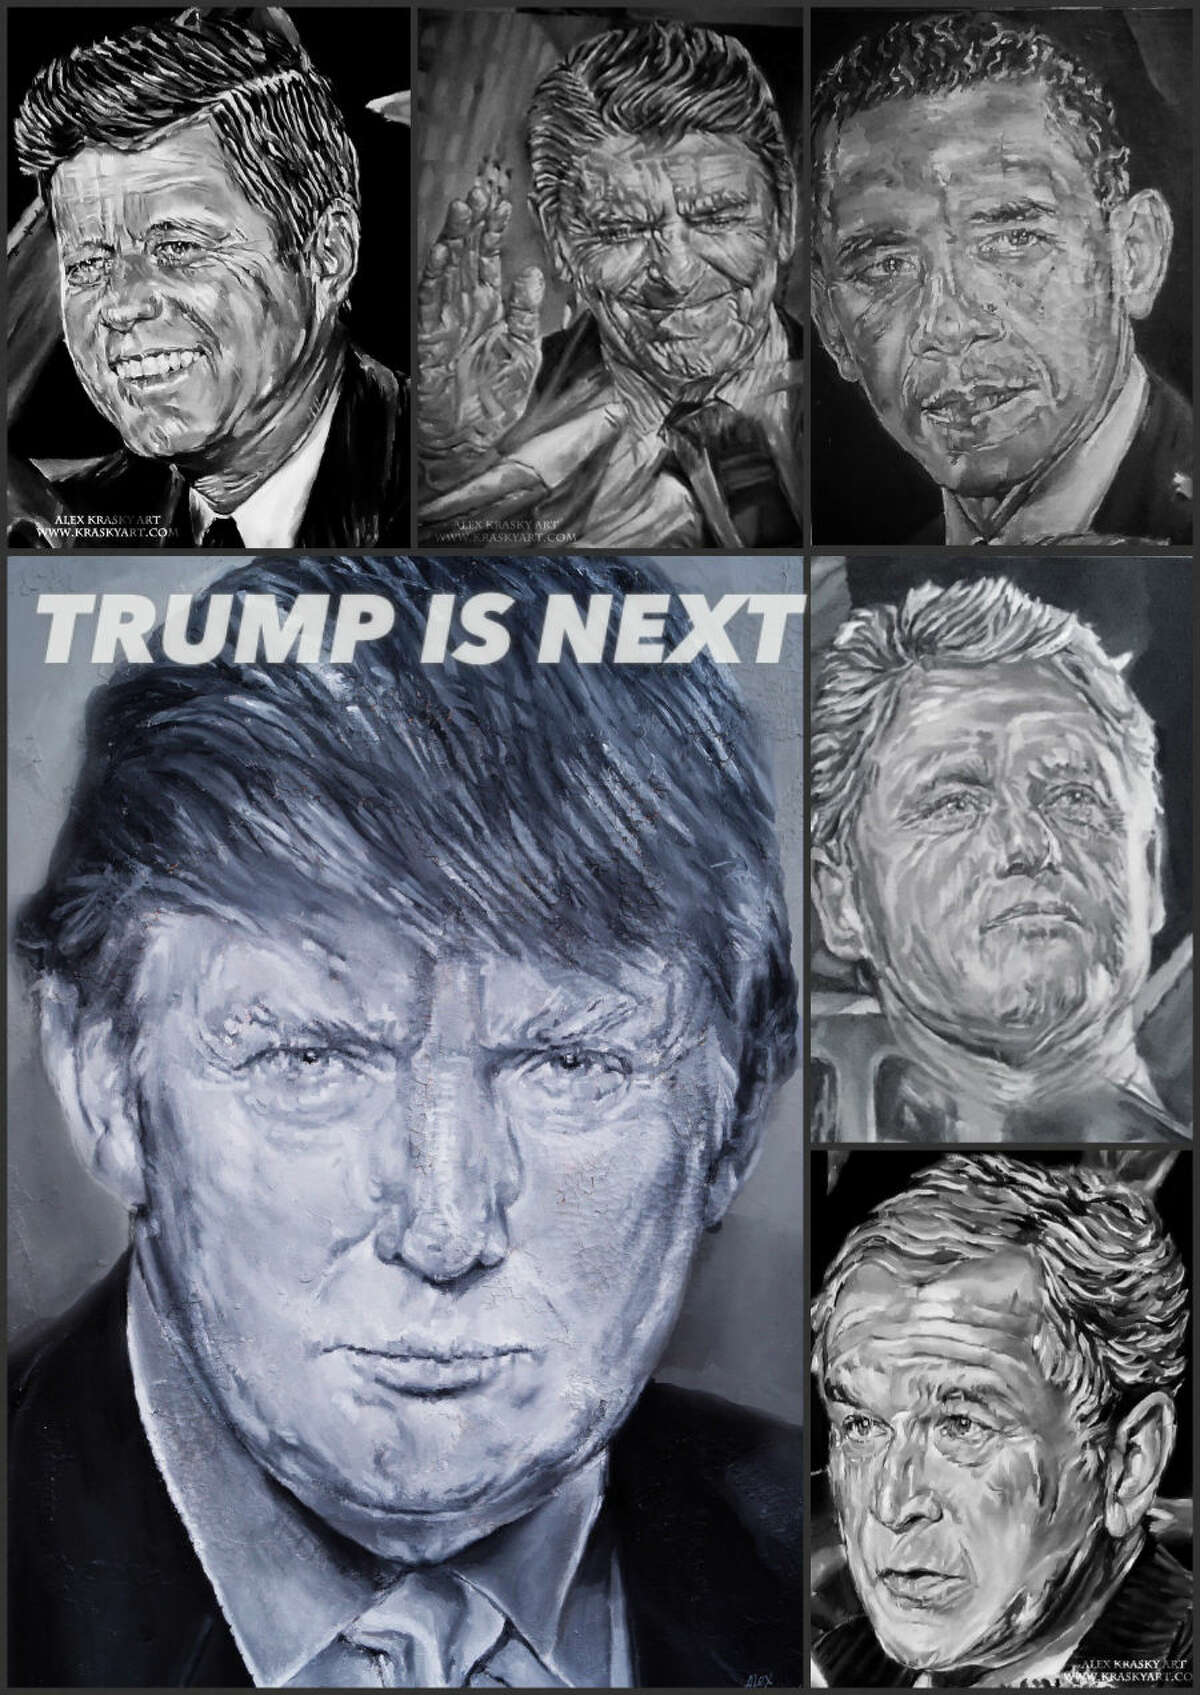 A Houston-based artist really wants to see Republican presidential hopeful Donald Trump succeed in 2016 so he's begun his own art campaign.